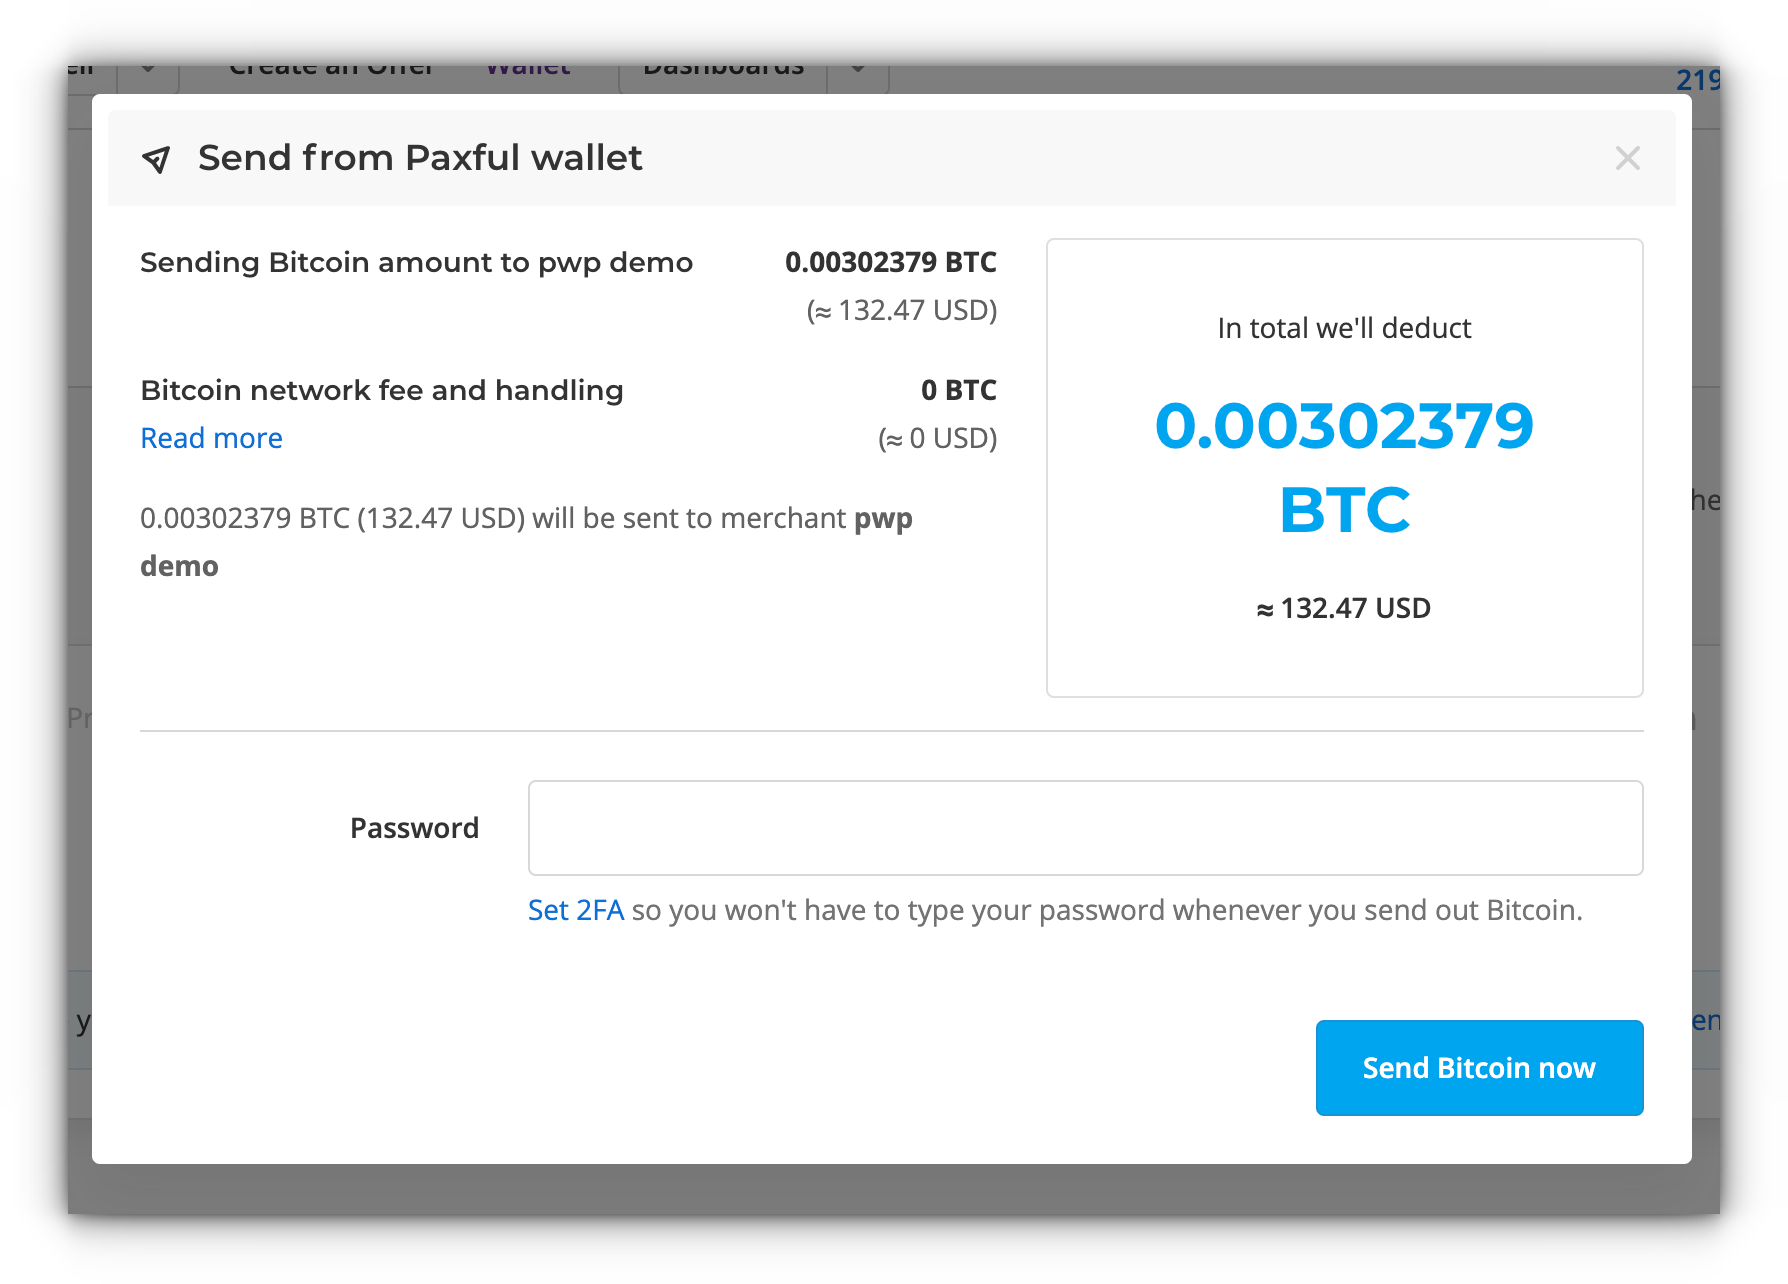 Paxful_Pay_New_User_Checkout_Step_7.png